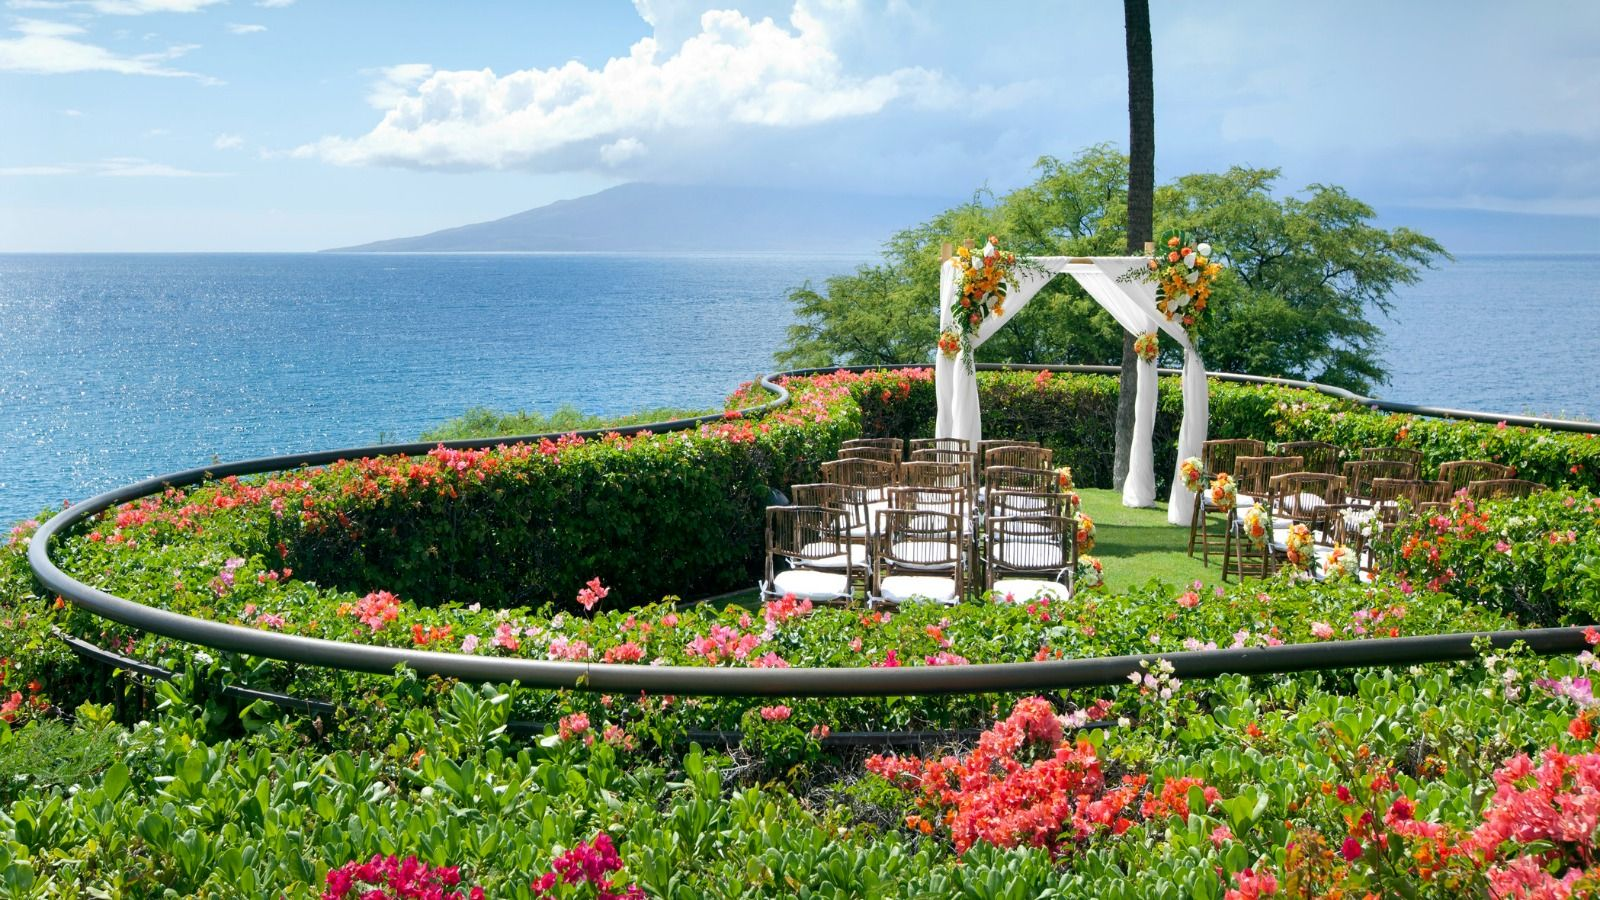 Sheraton Maui Resort & Spa - Ali'i Lawn